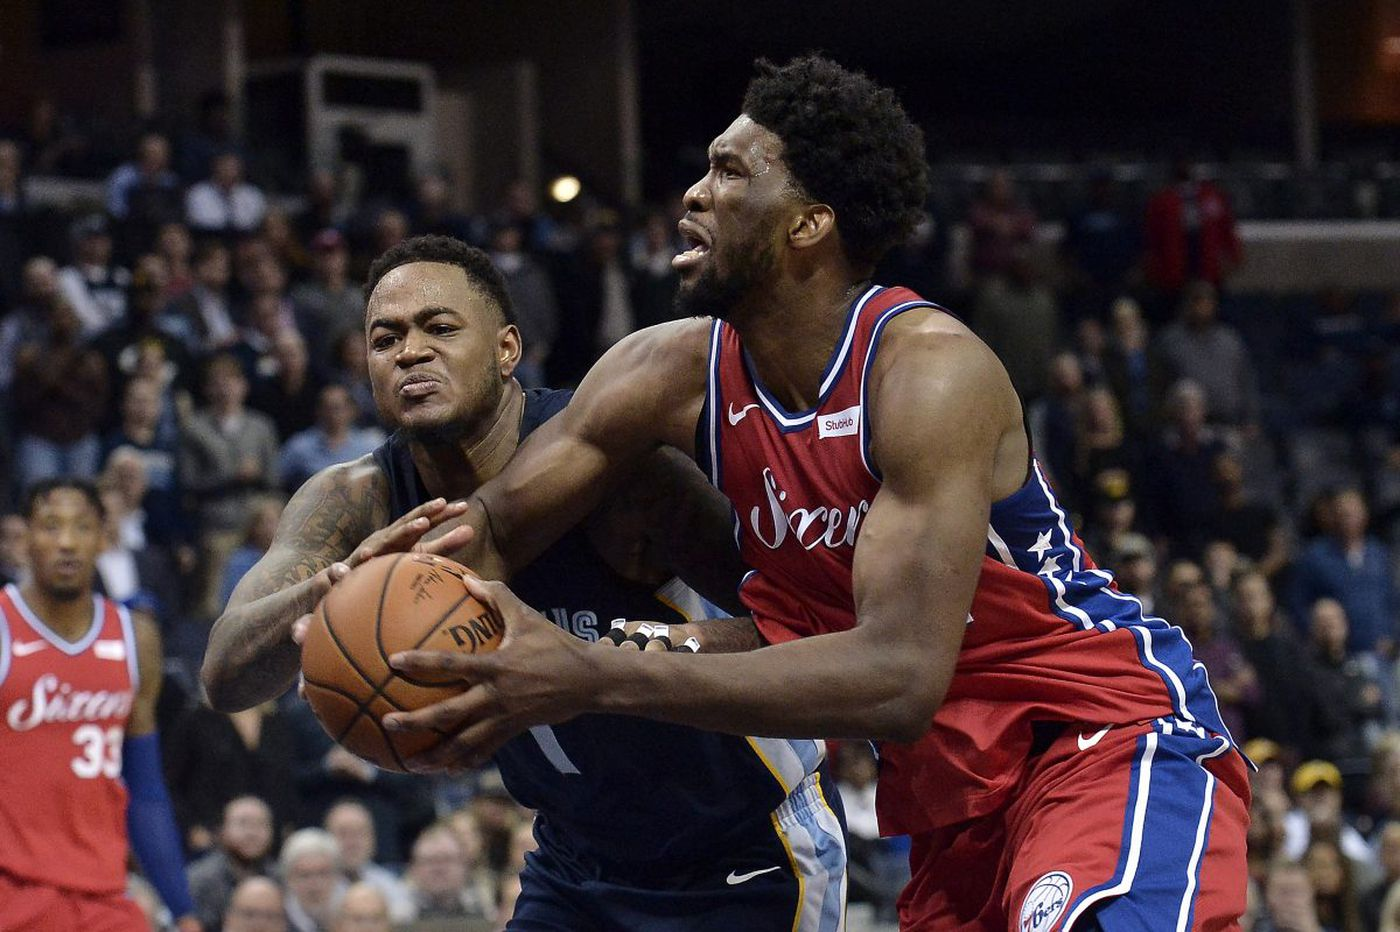 Sixers blow another lead and lose to Grizzlies, 105-101